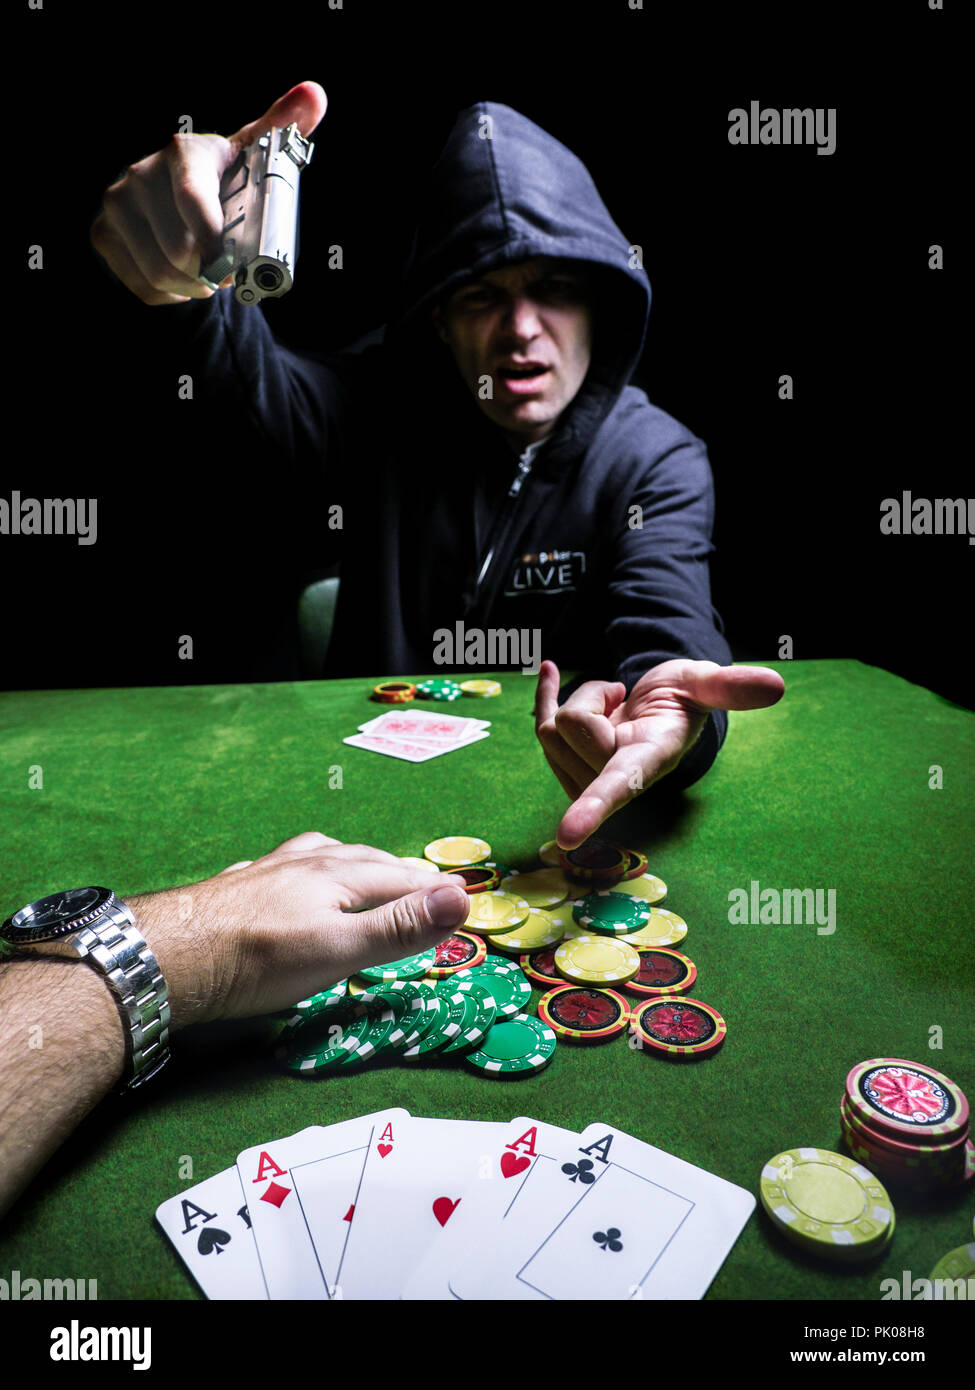 poker player angry pointing a gun handgun cheater cheating card game cards chips hoodie - Stock Image